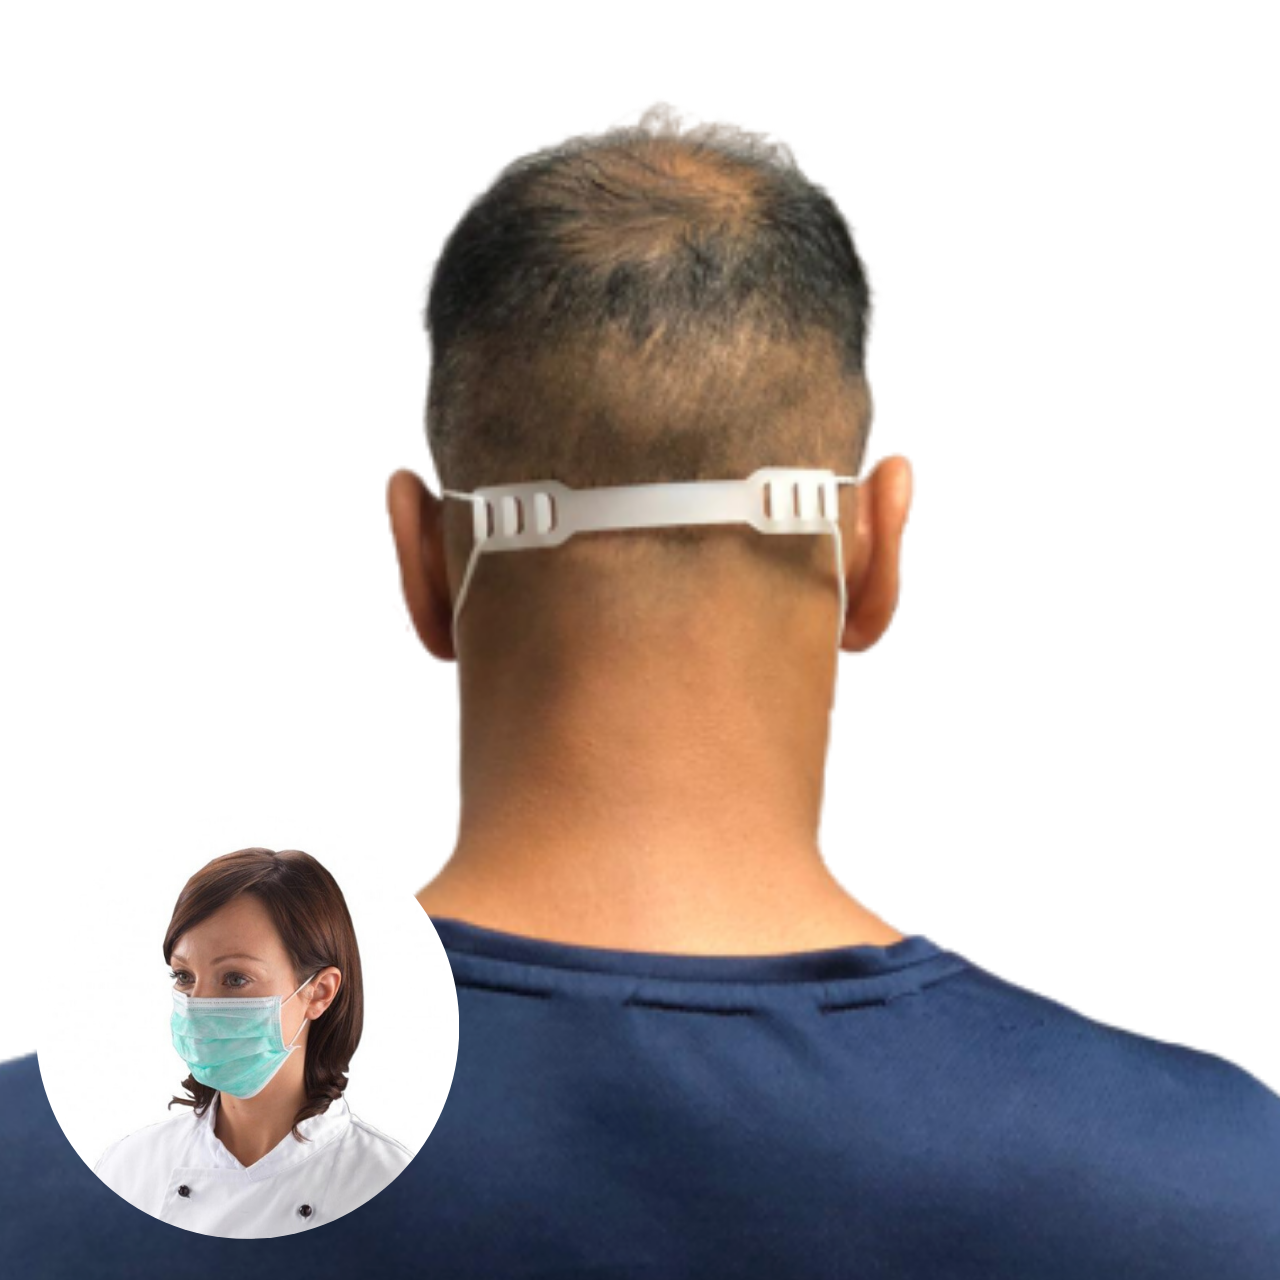 Generise Adjustable Face Mask Support Strap, Work Safety Protective Equipment by My Wholesale Warehouse